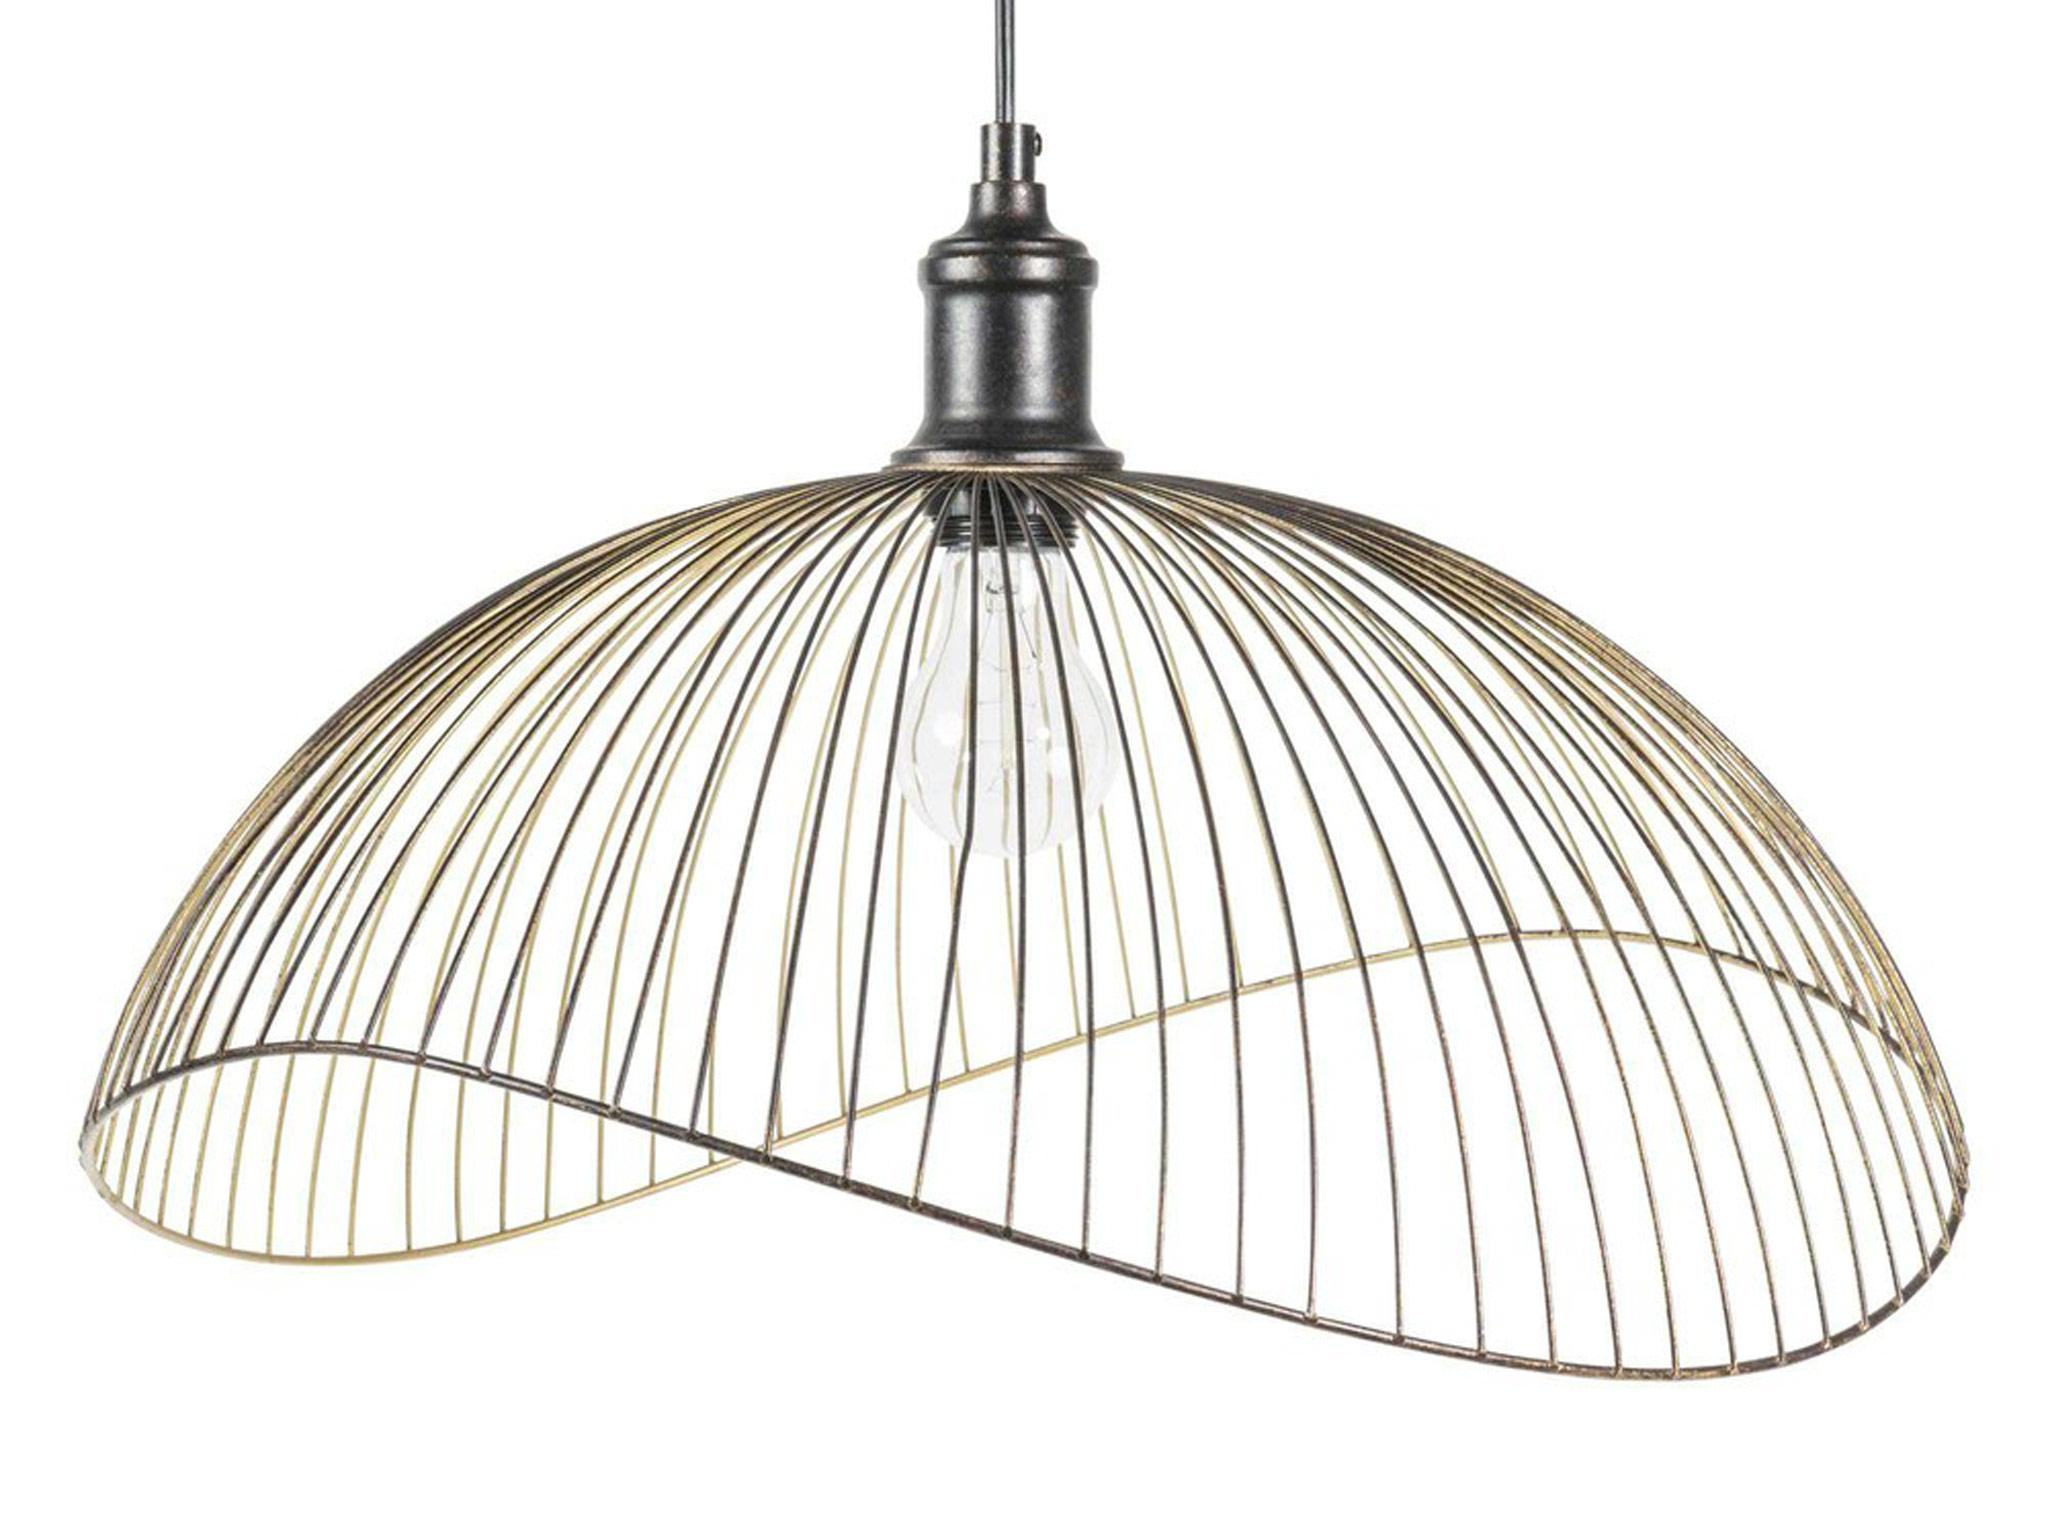 Wiring A New Light Fixture Uk 10 Best Lampshades The Independent Phaona Black Metal Wire Pendant 6599 Maisons Du Monde